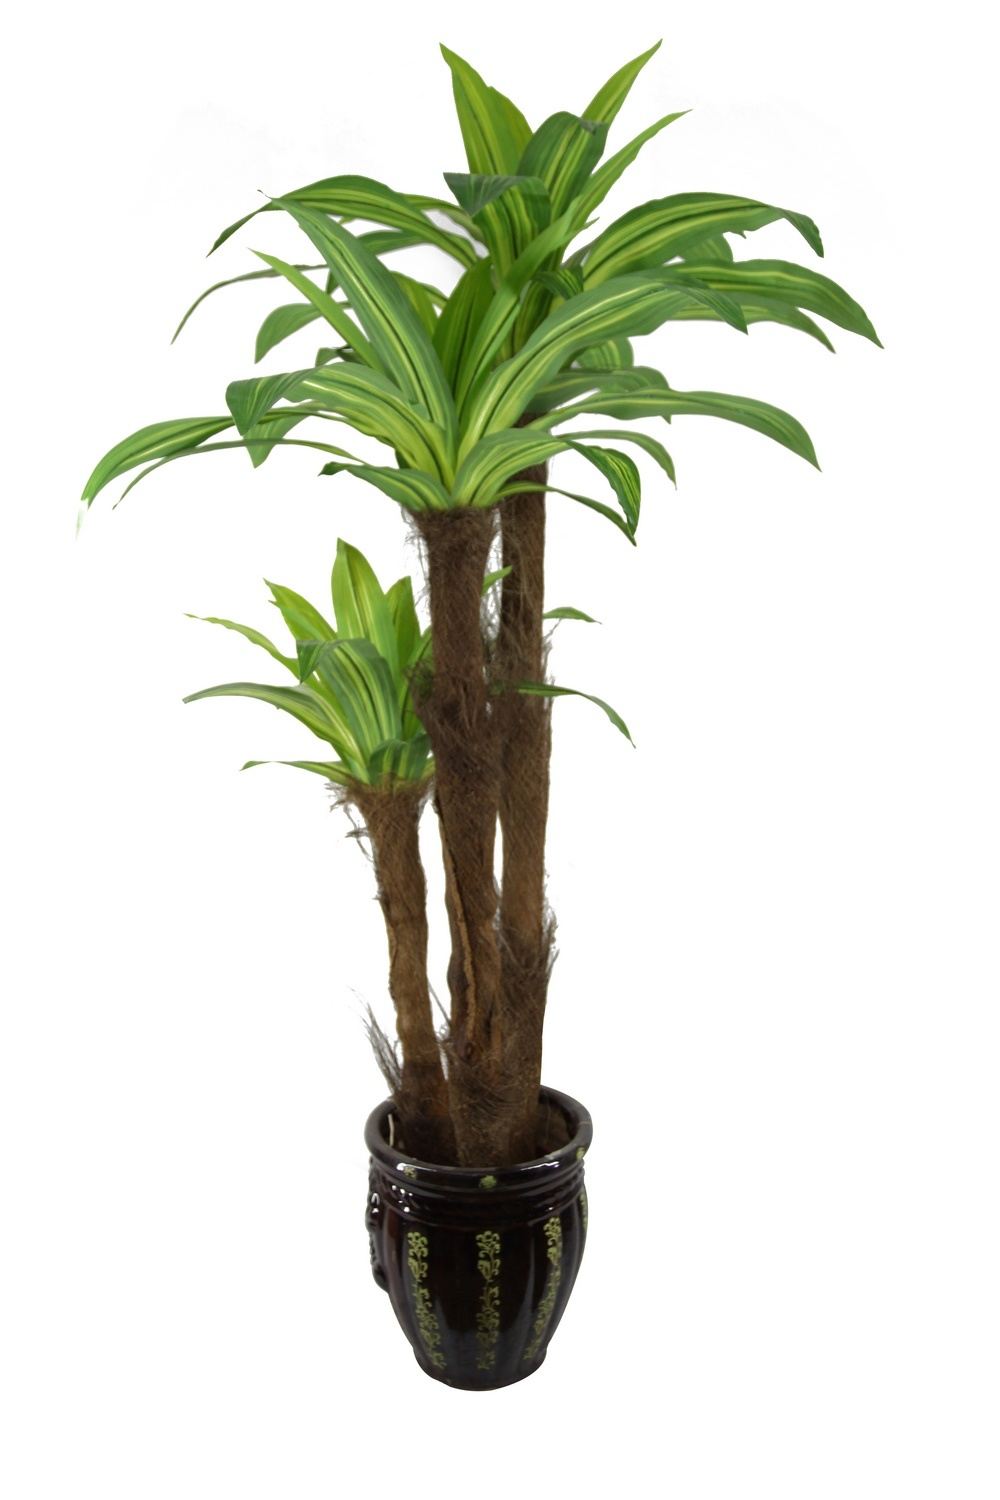 China emulated dracaena fragrans synthetic plants jtla for Plante dracaena